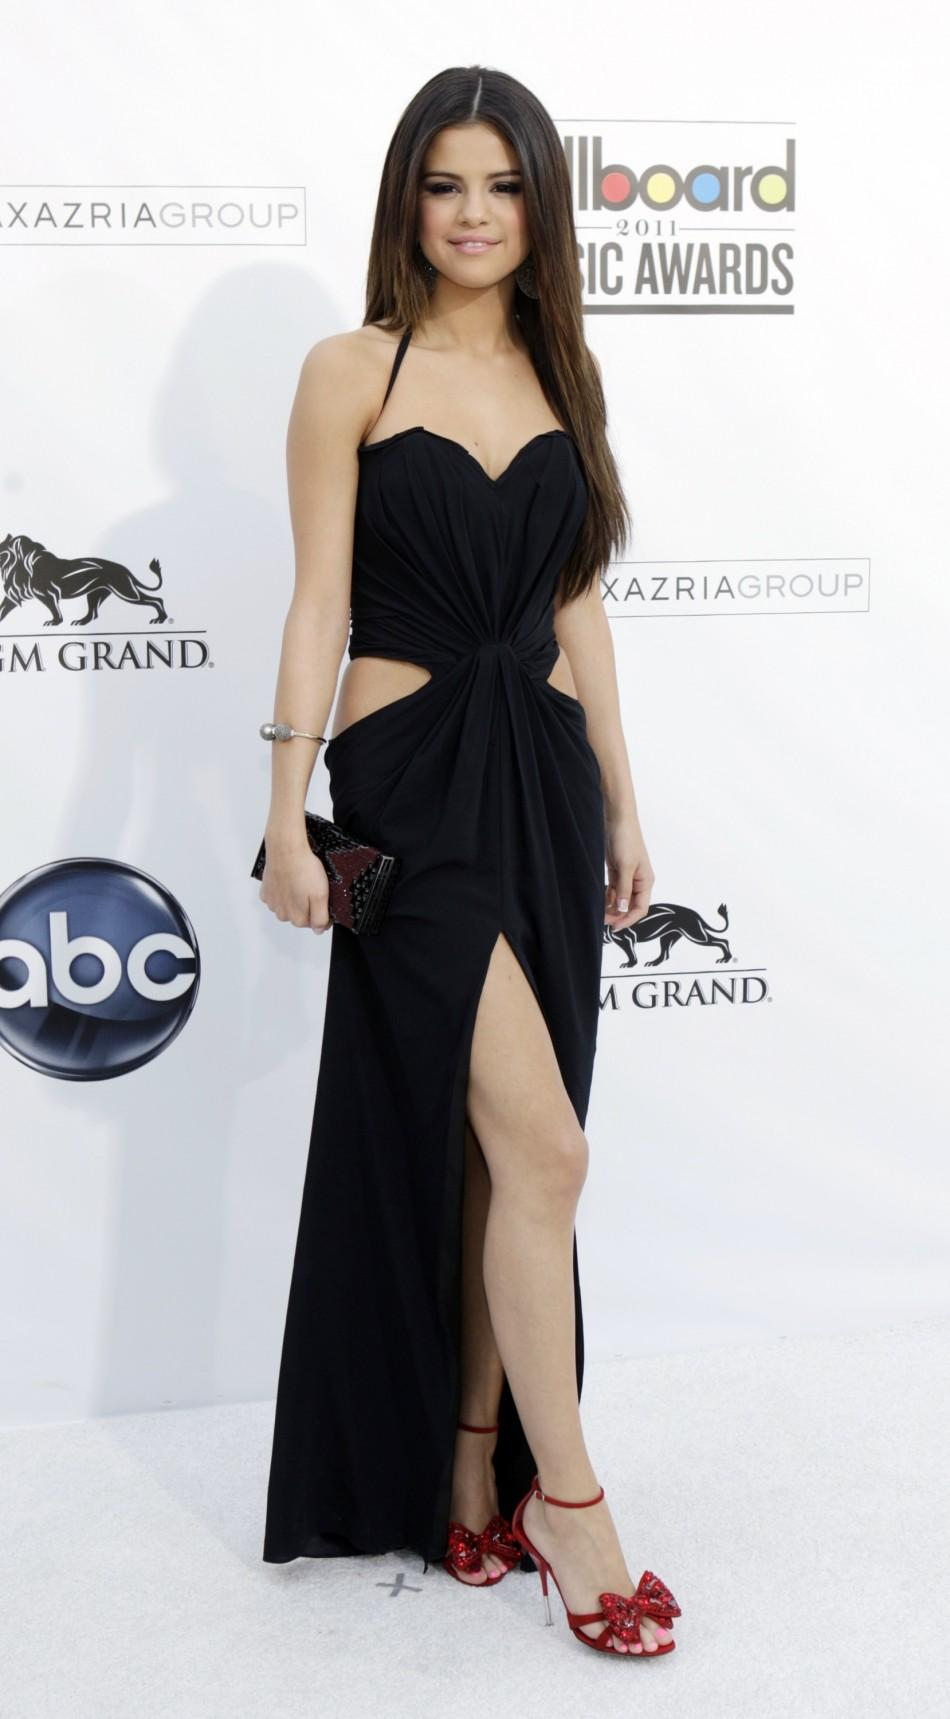 Singer Selena Gomez arrives at the 2011 Billboard Music Awards show in Las Vegas